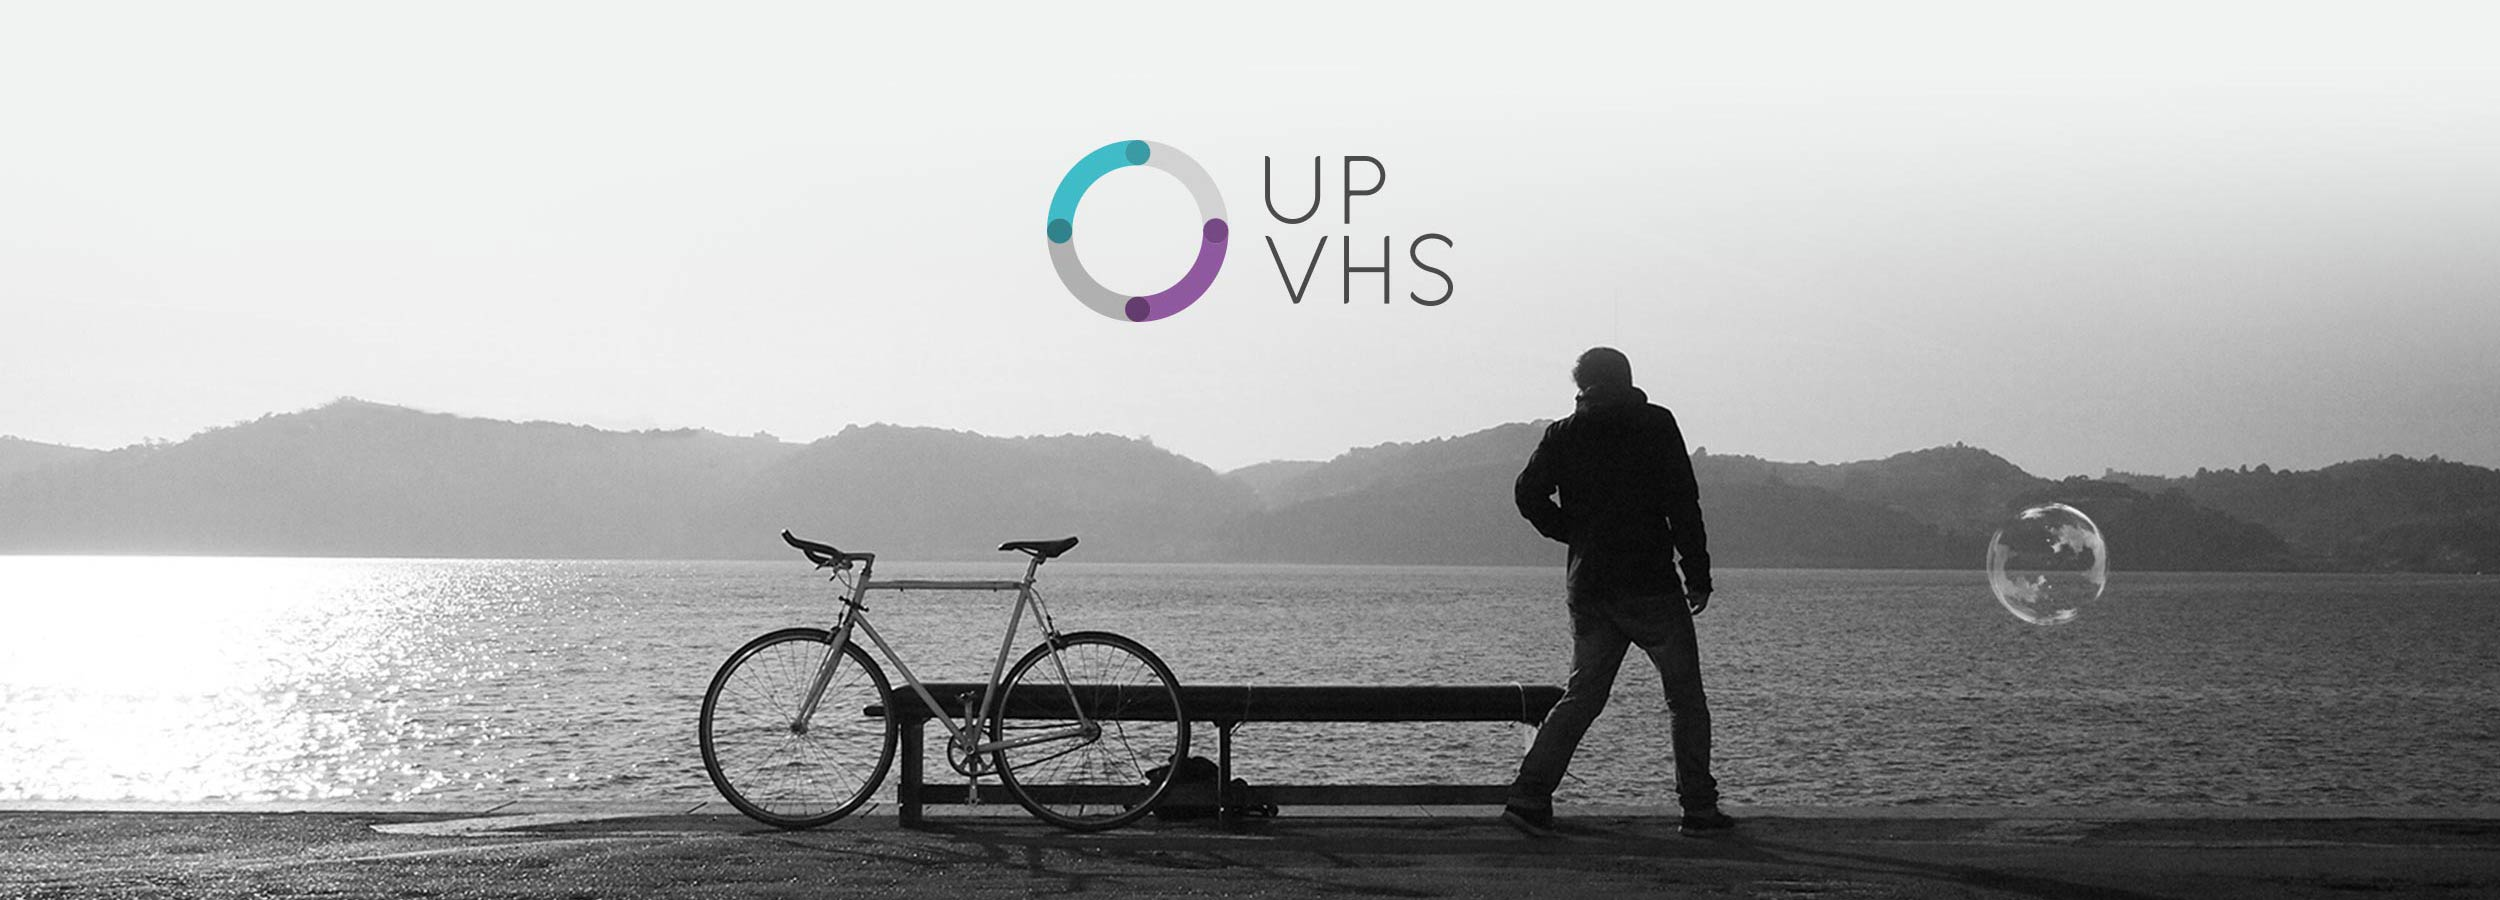 UP-VHS